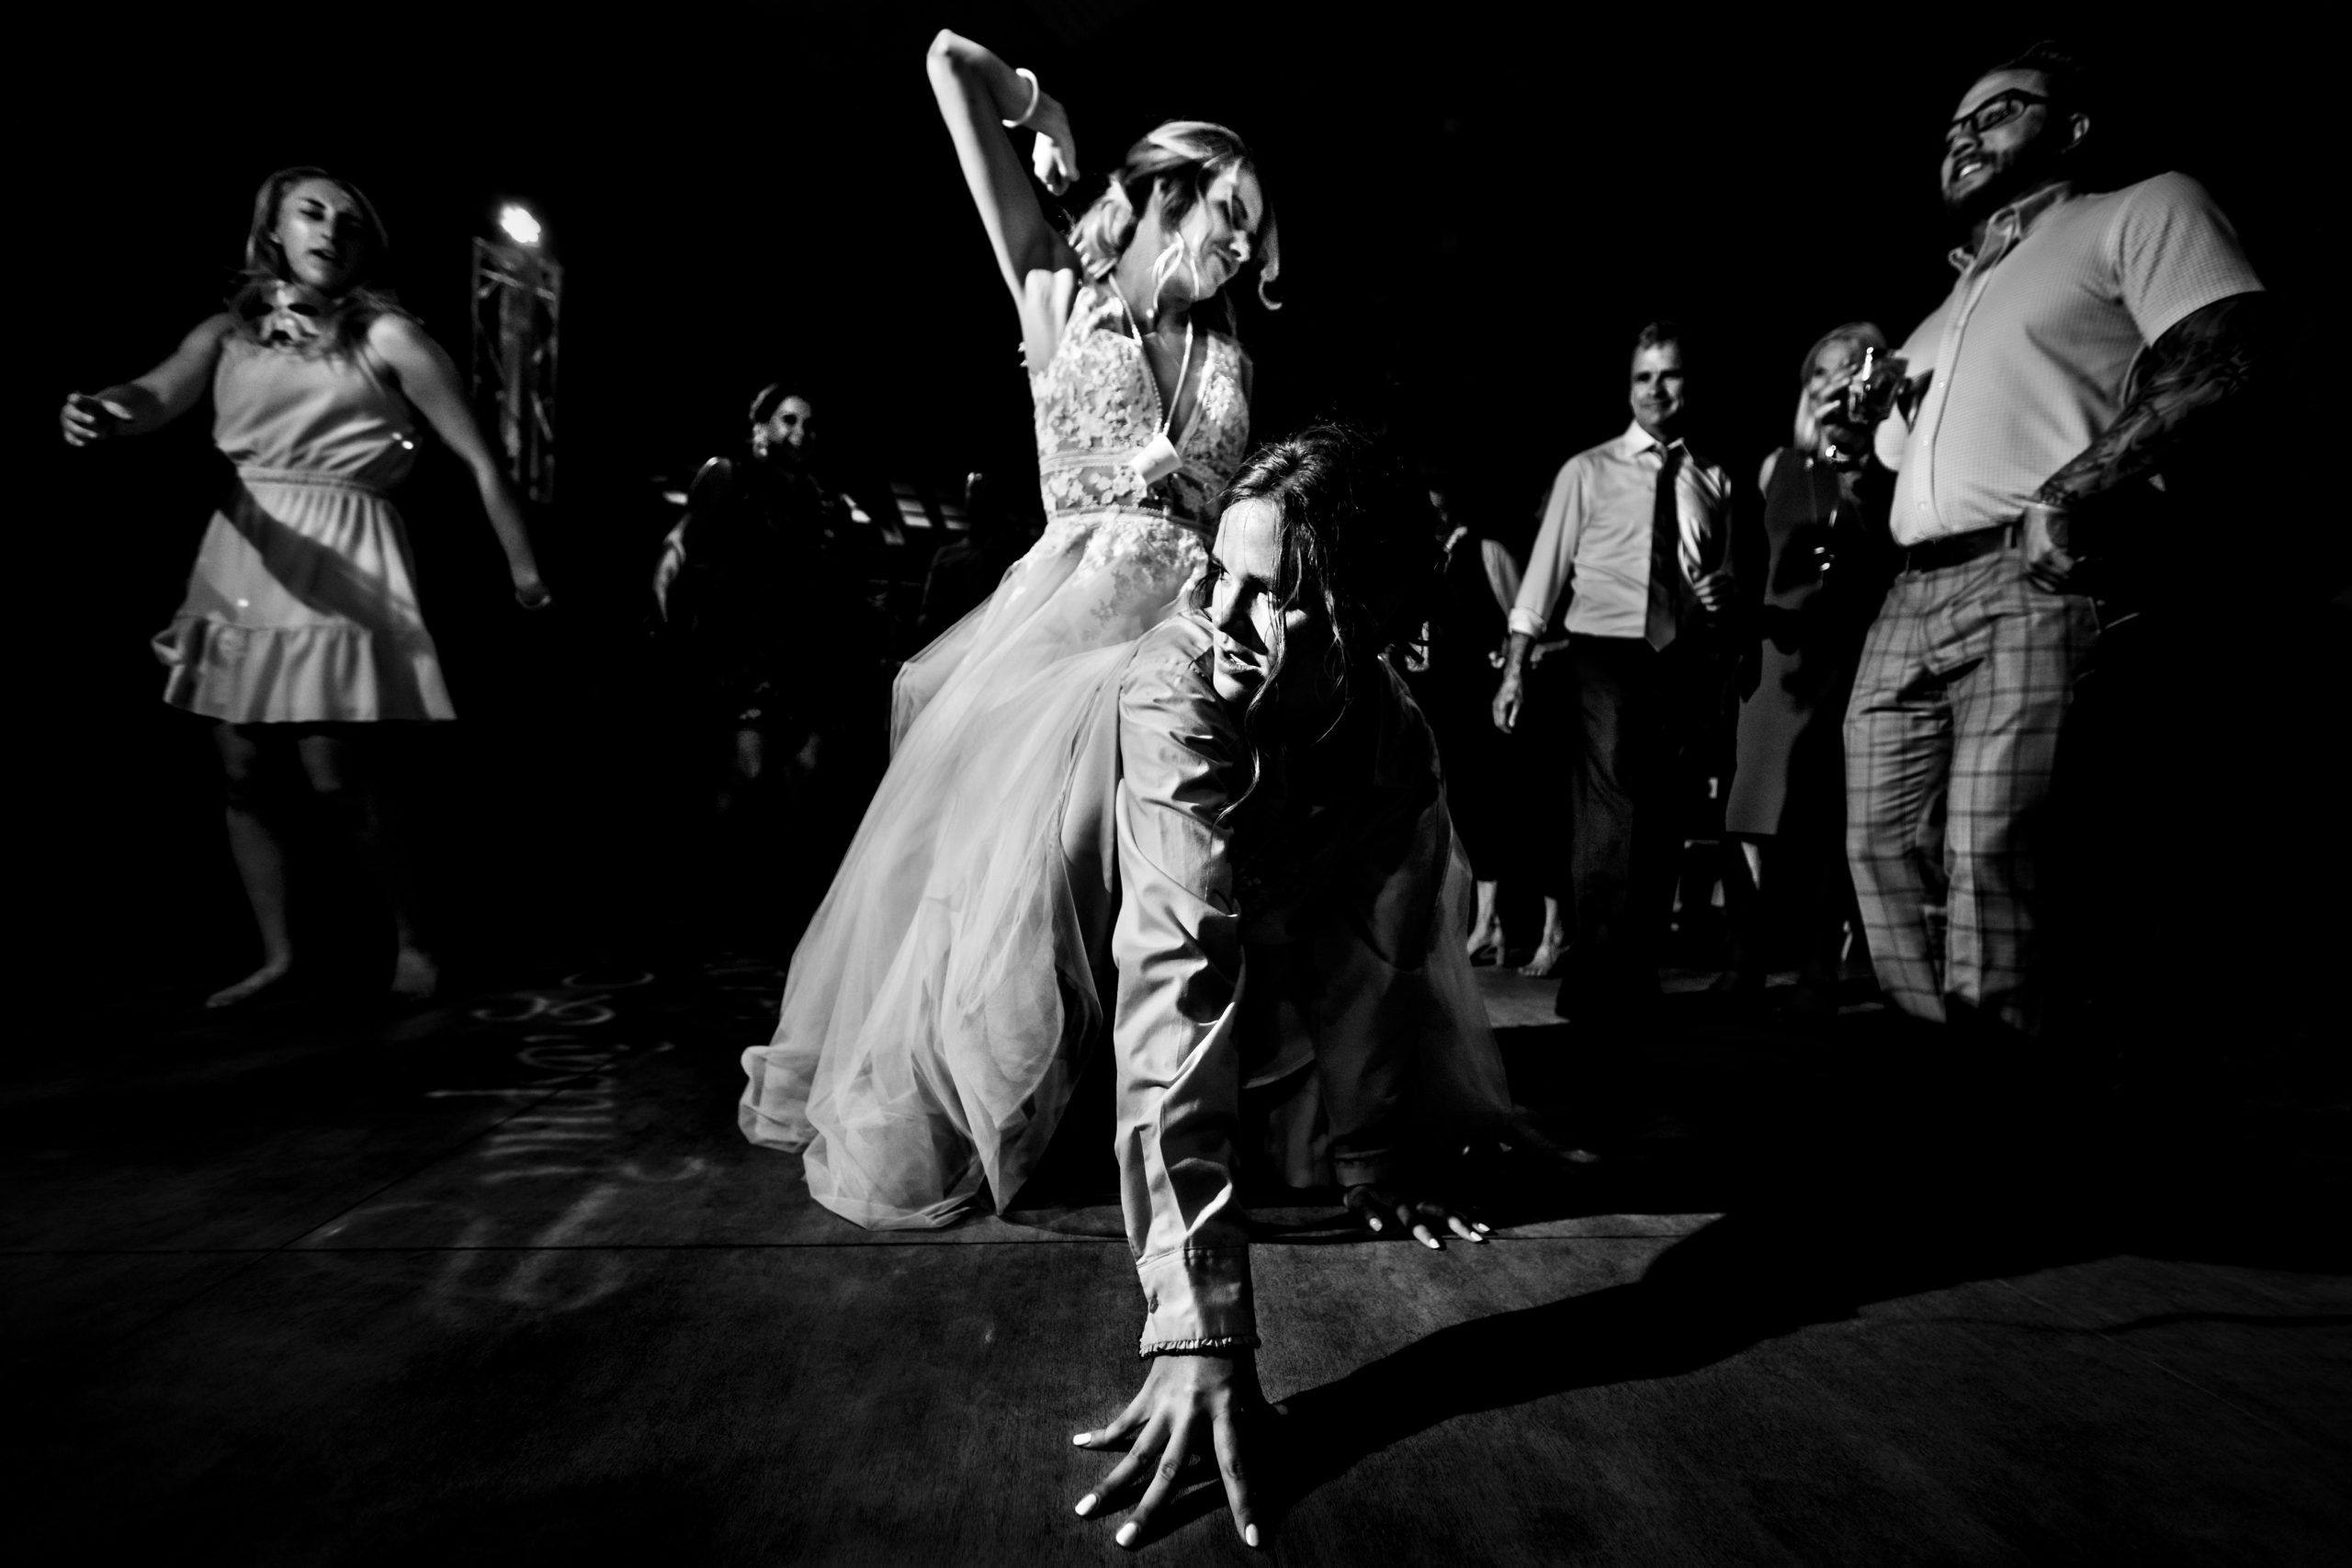 Bride dances as she rides on her friend's back at the wedding reception.